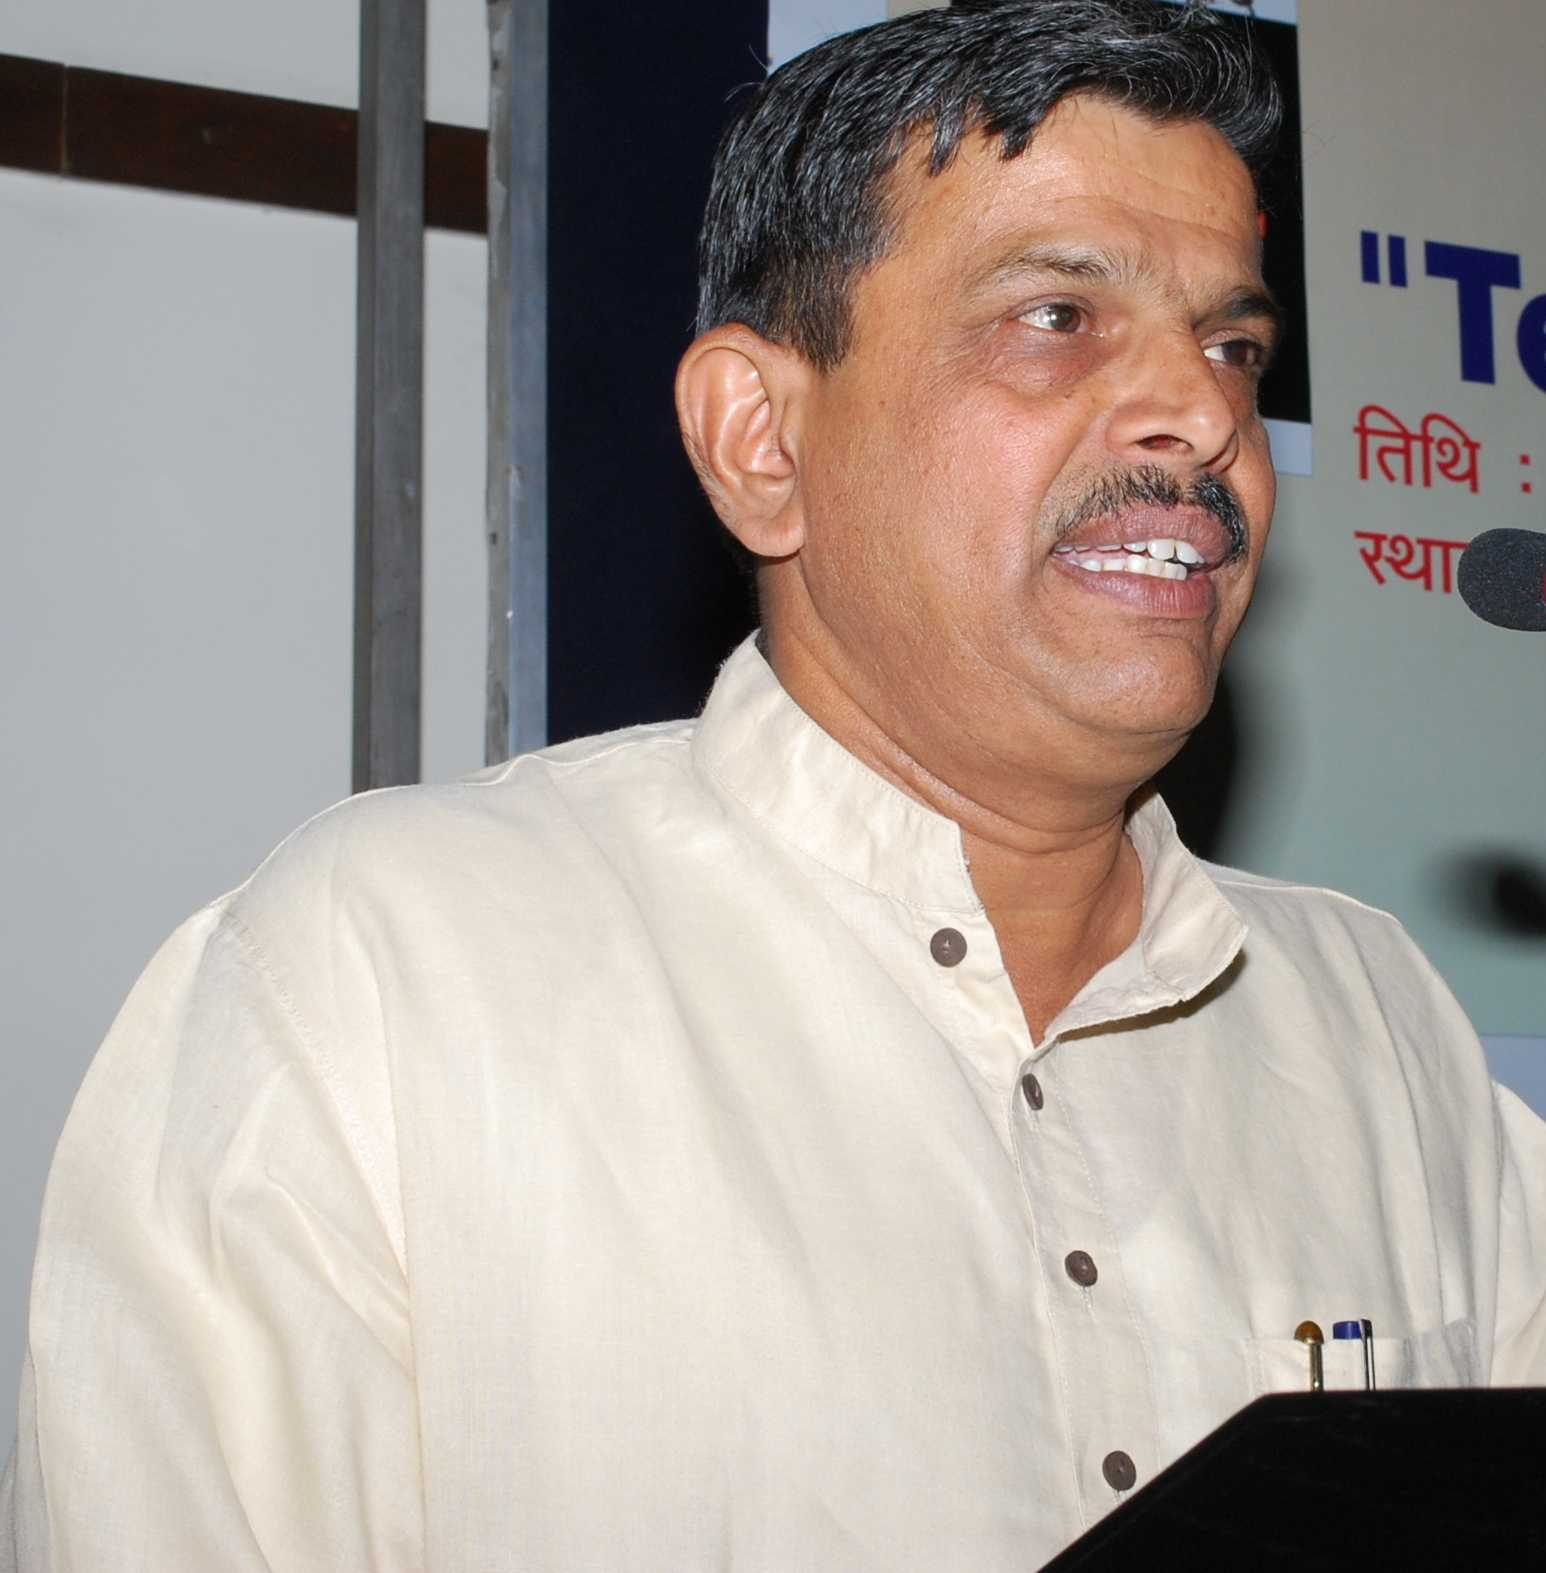 RSS camp for character building: Hosabale